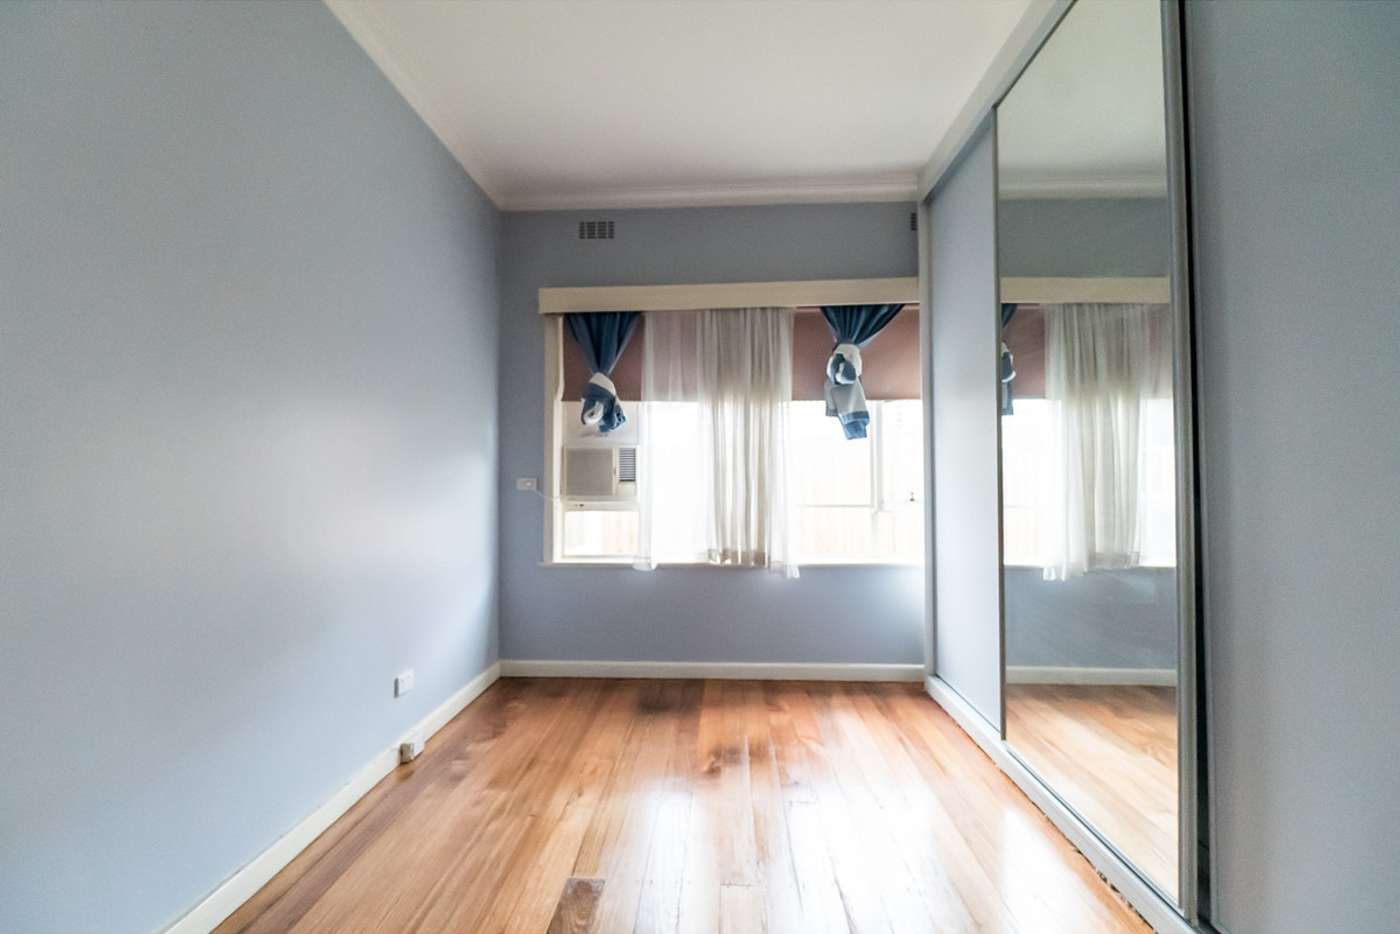 Sixth view of Homely house listing, 8 Plym Street, Bentleigh VIC 3204